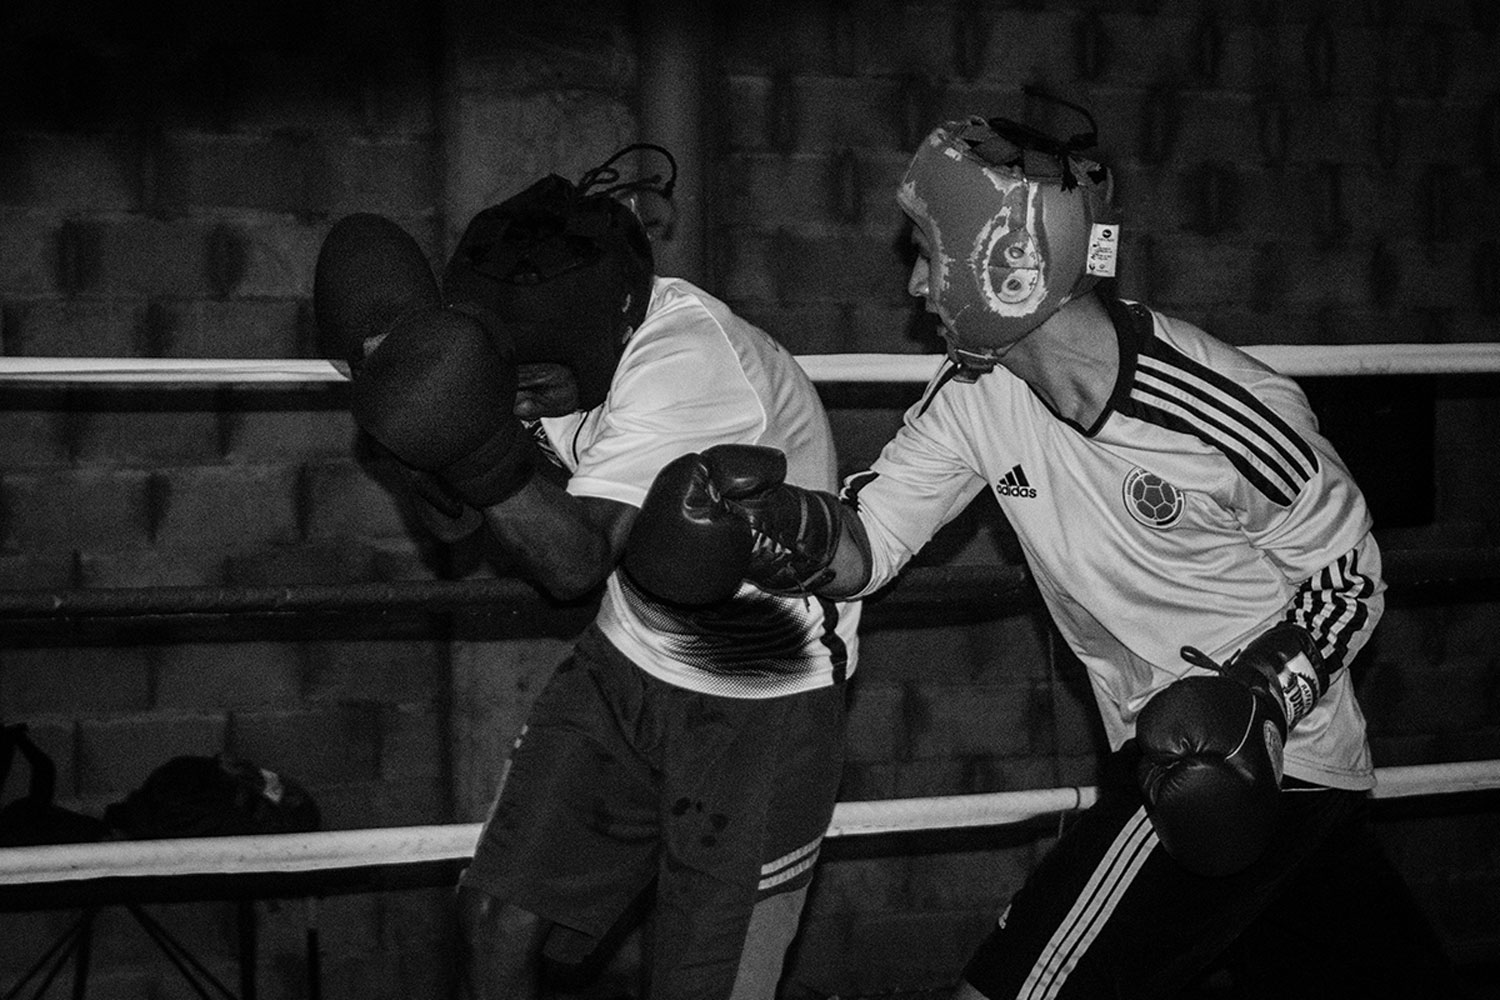 Two members of 'Bon Pantera' face each other during a boxing training. February 2, 2018.